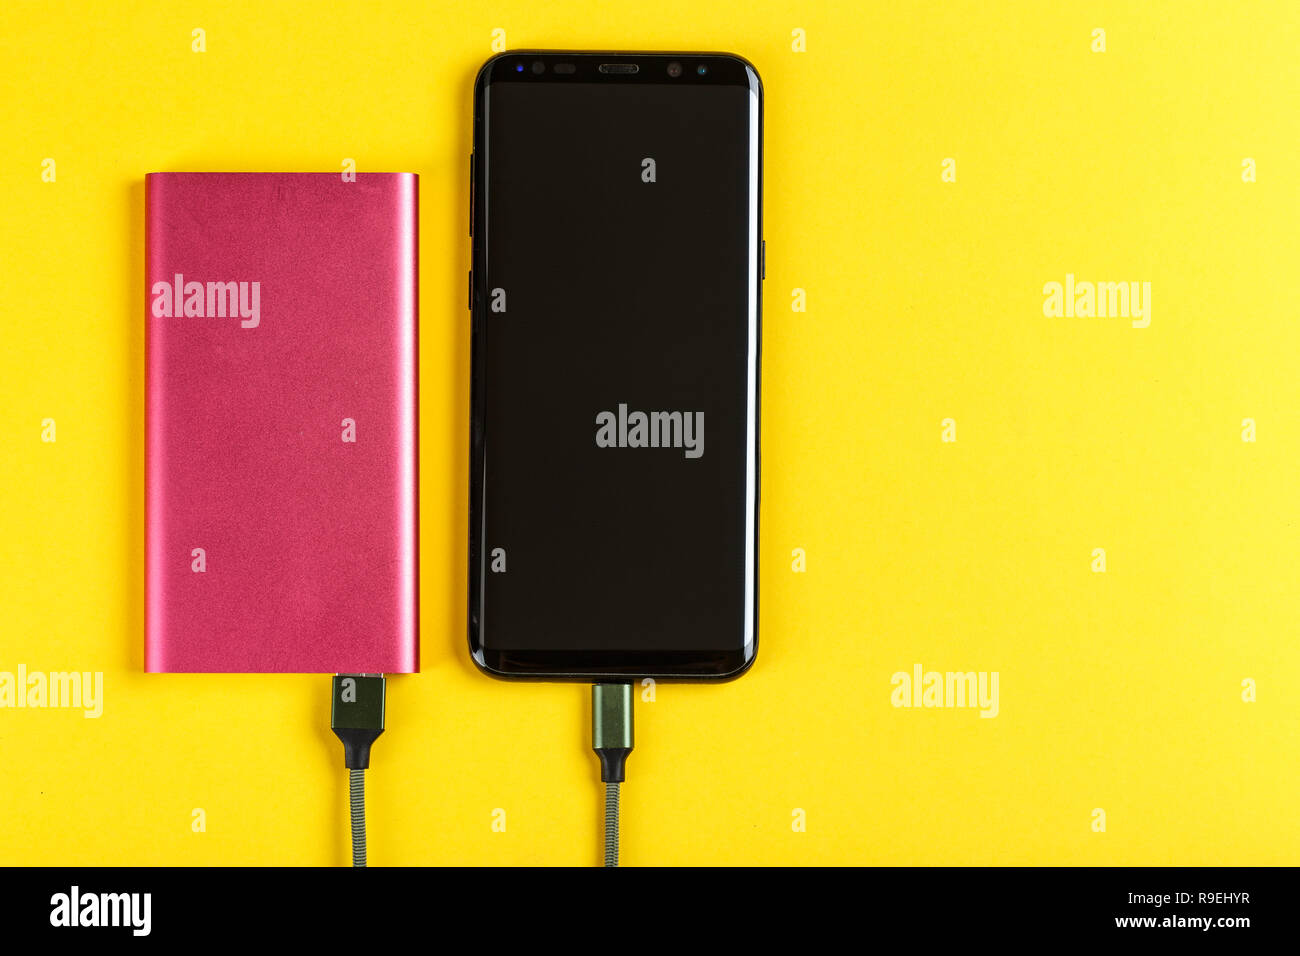 the smartphone is charging from a pink power bank on a yellow background Stock Photo